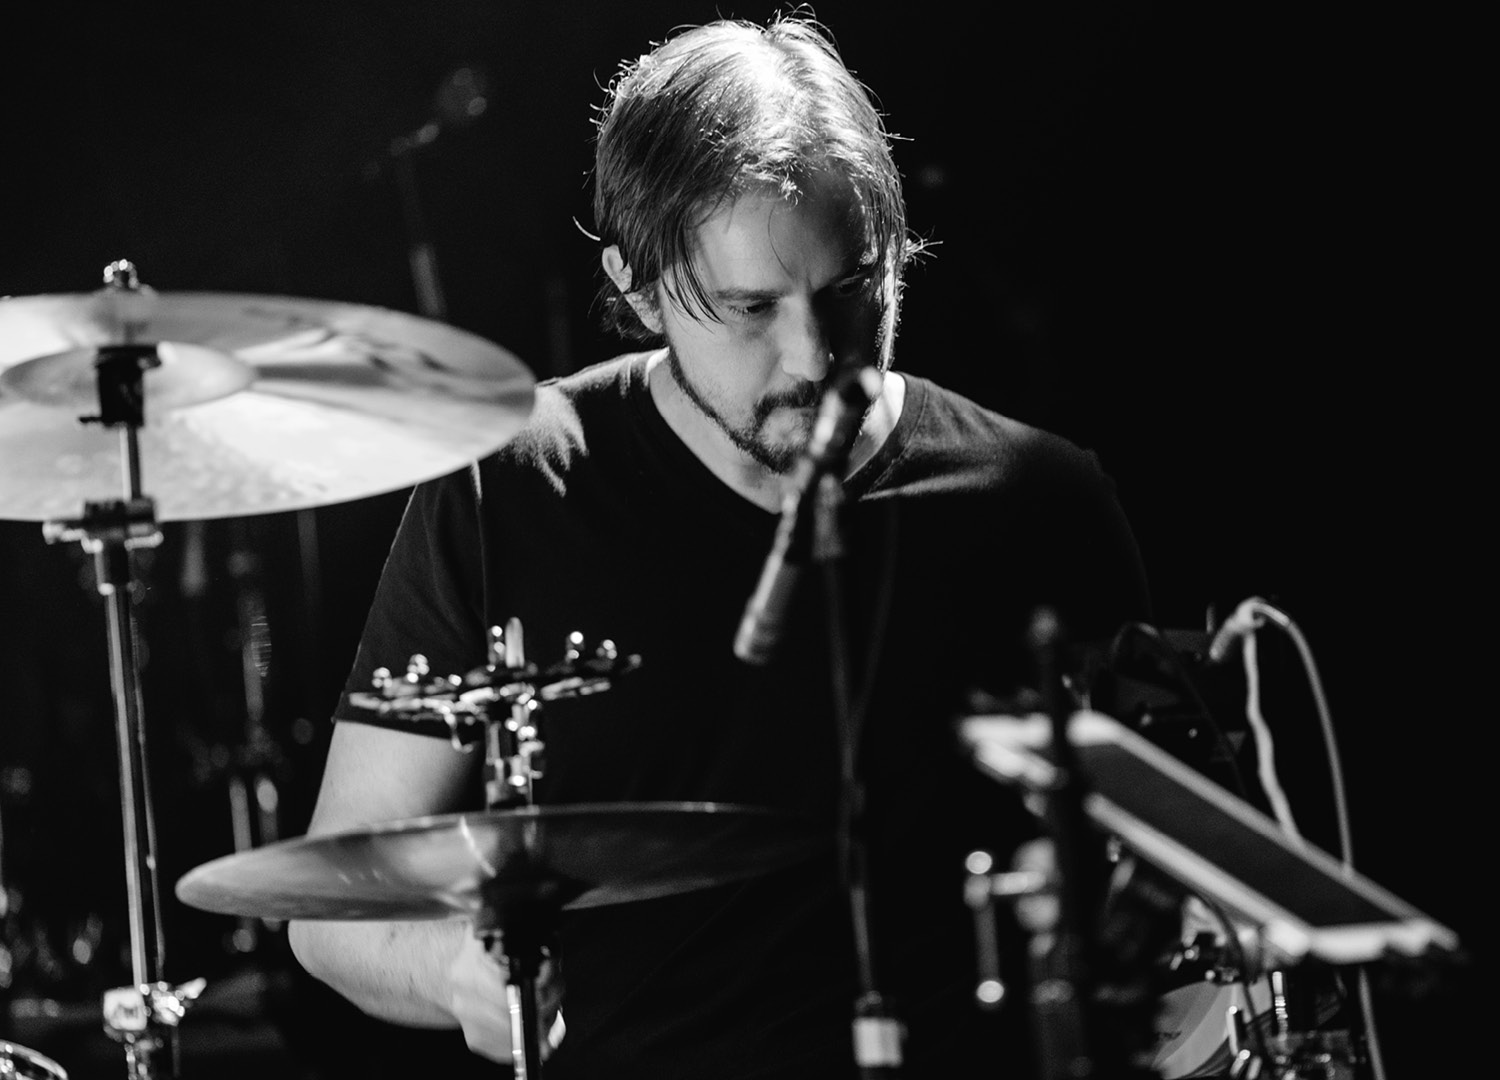 blacn and white photo of man drumming